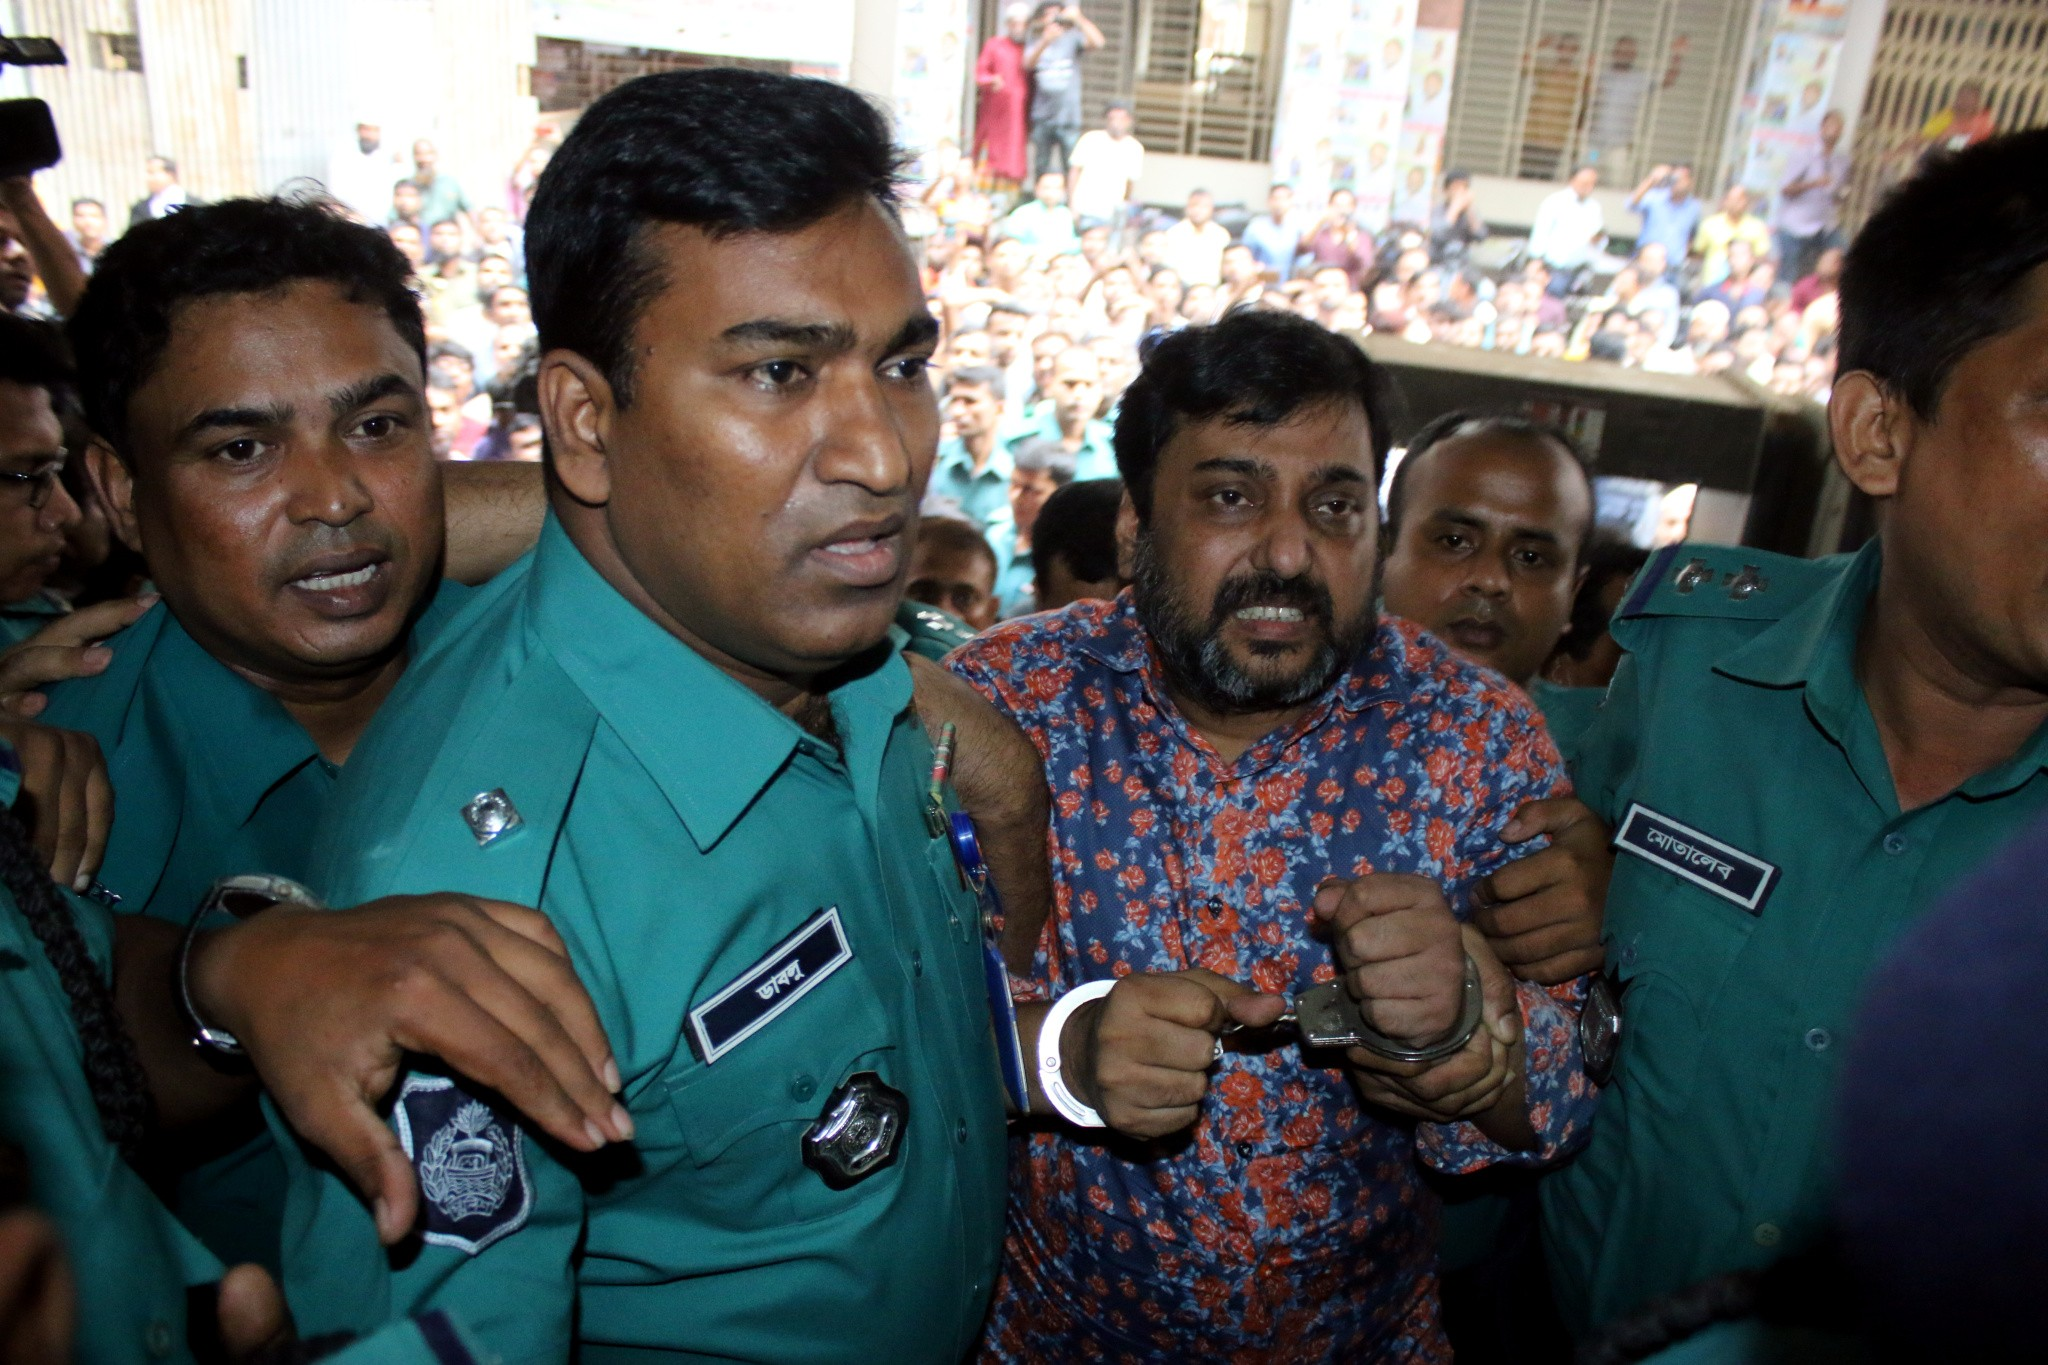 Samrat put on 10-day remand in two cases